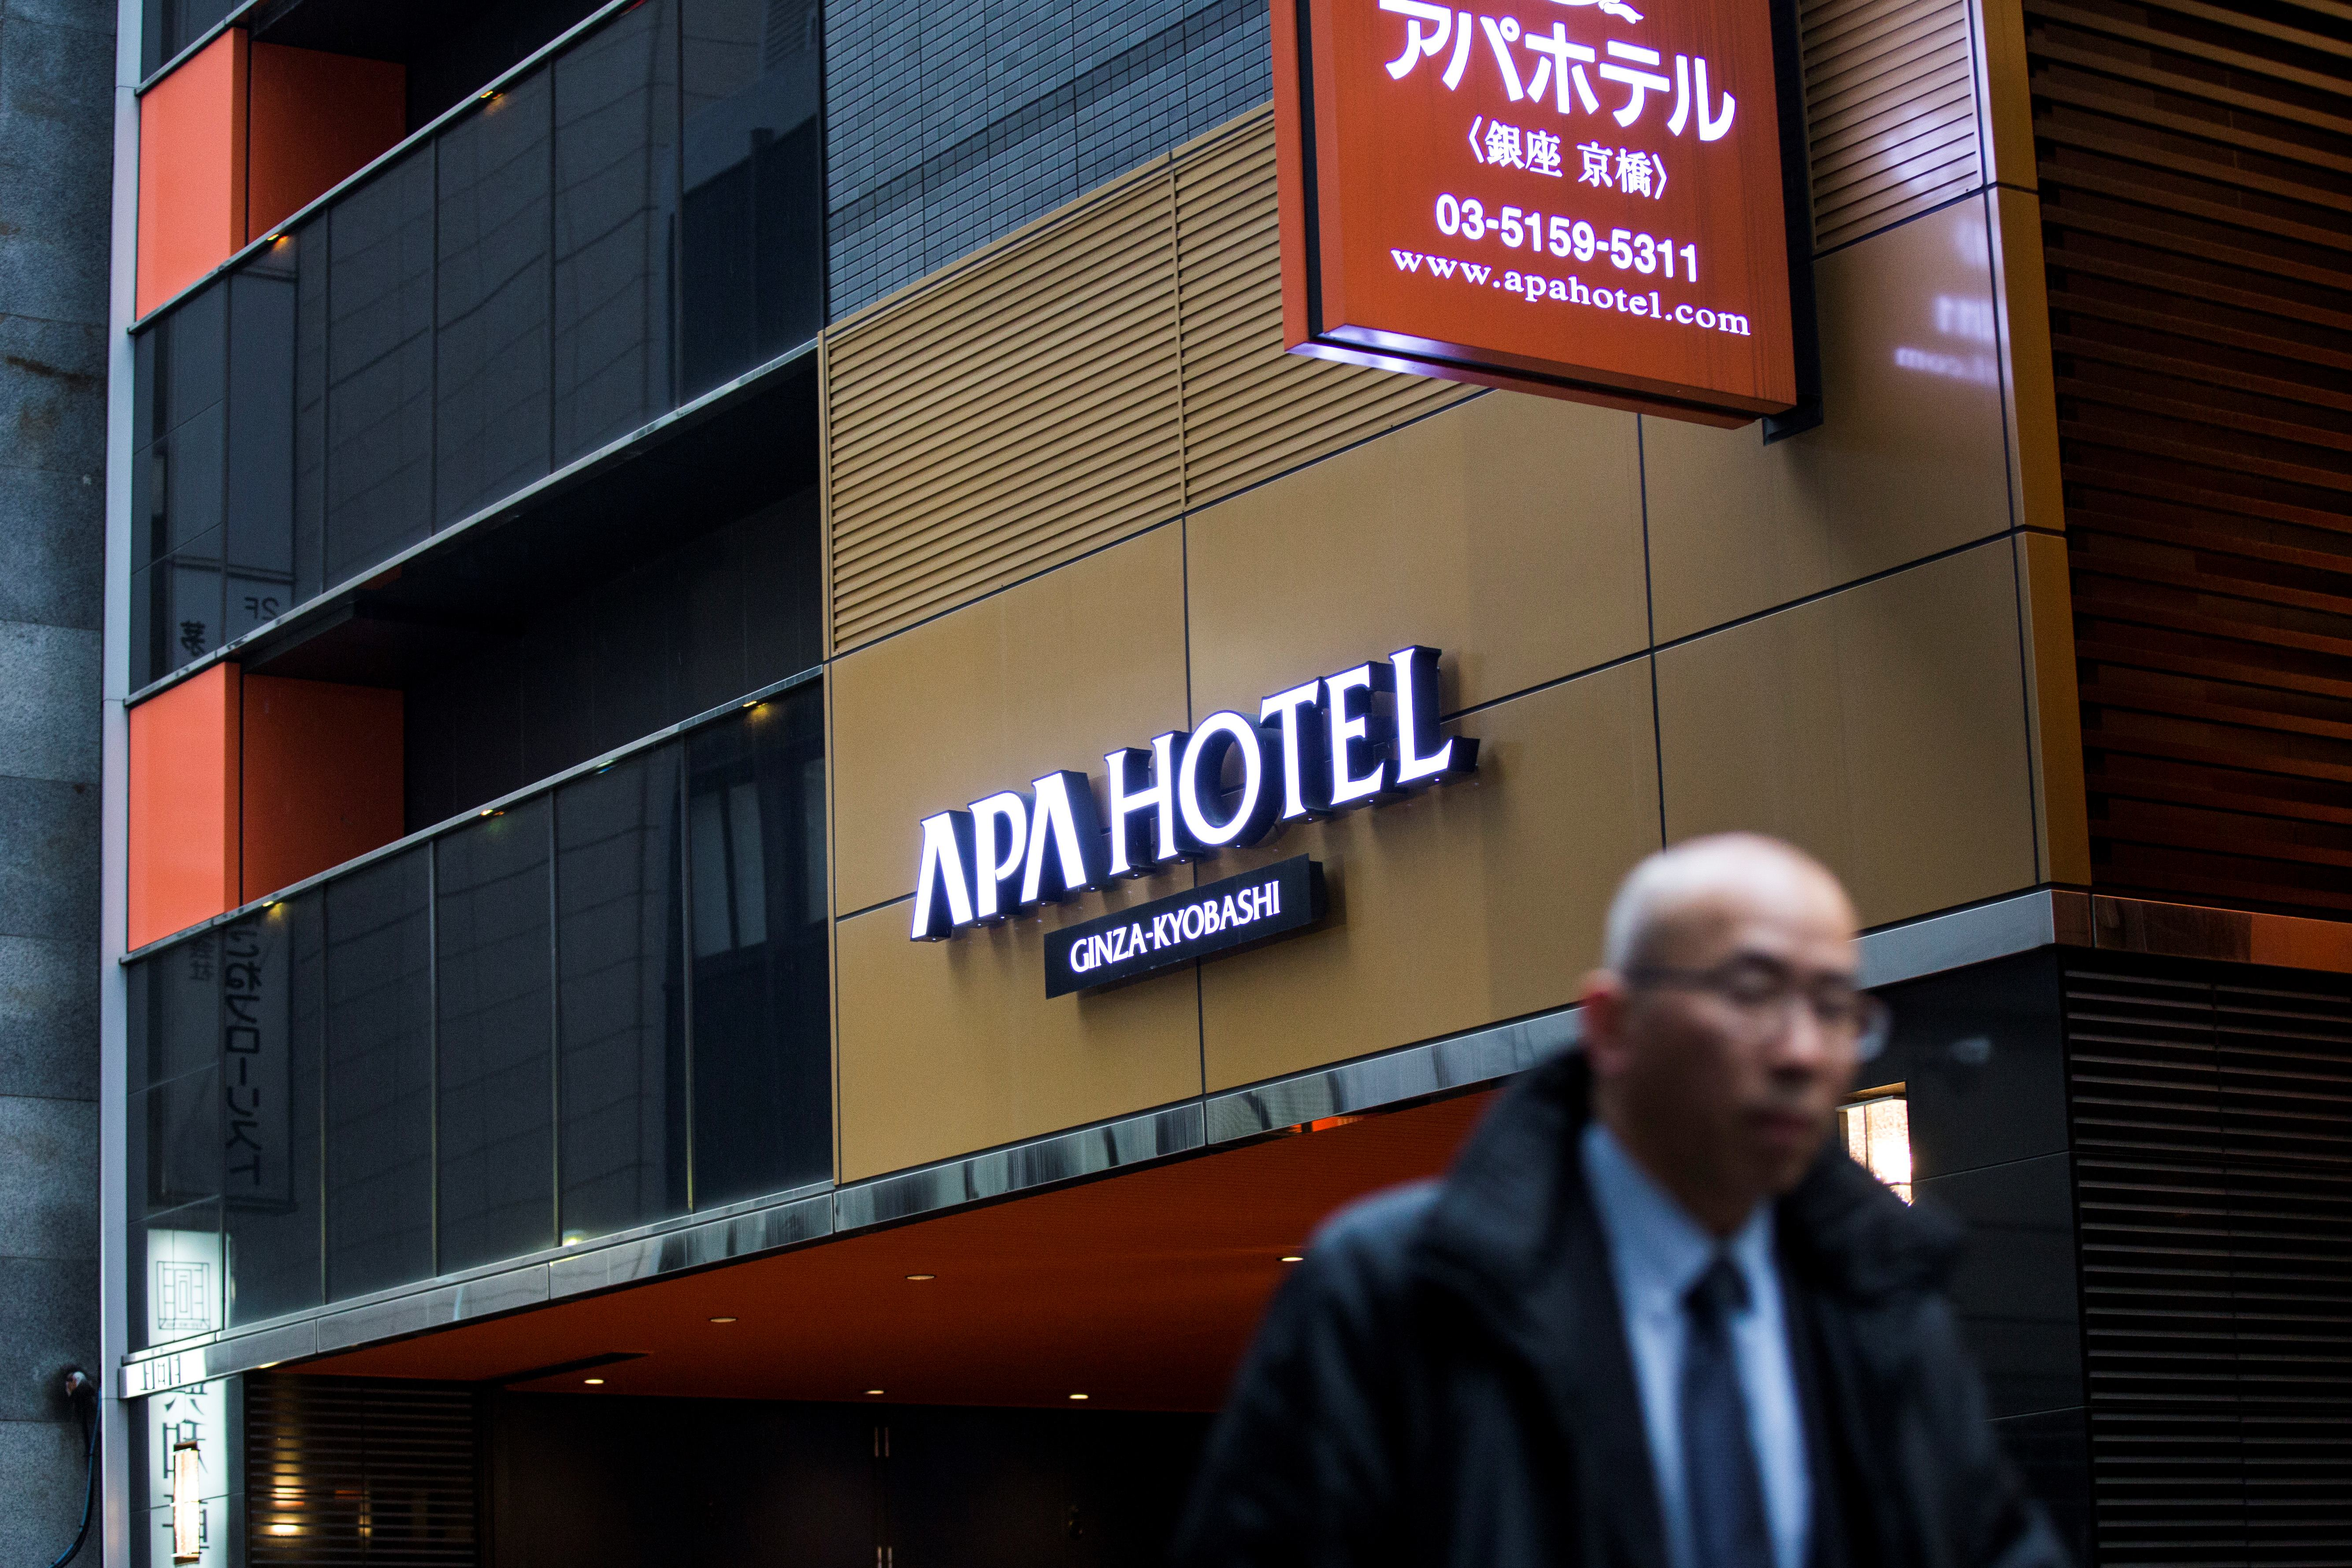 A man walks past the entrance of an APA hotel in central Tokyo on Jan. 20, 2017